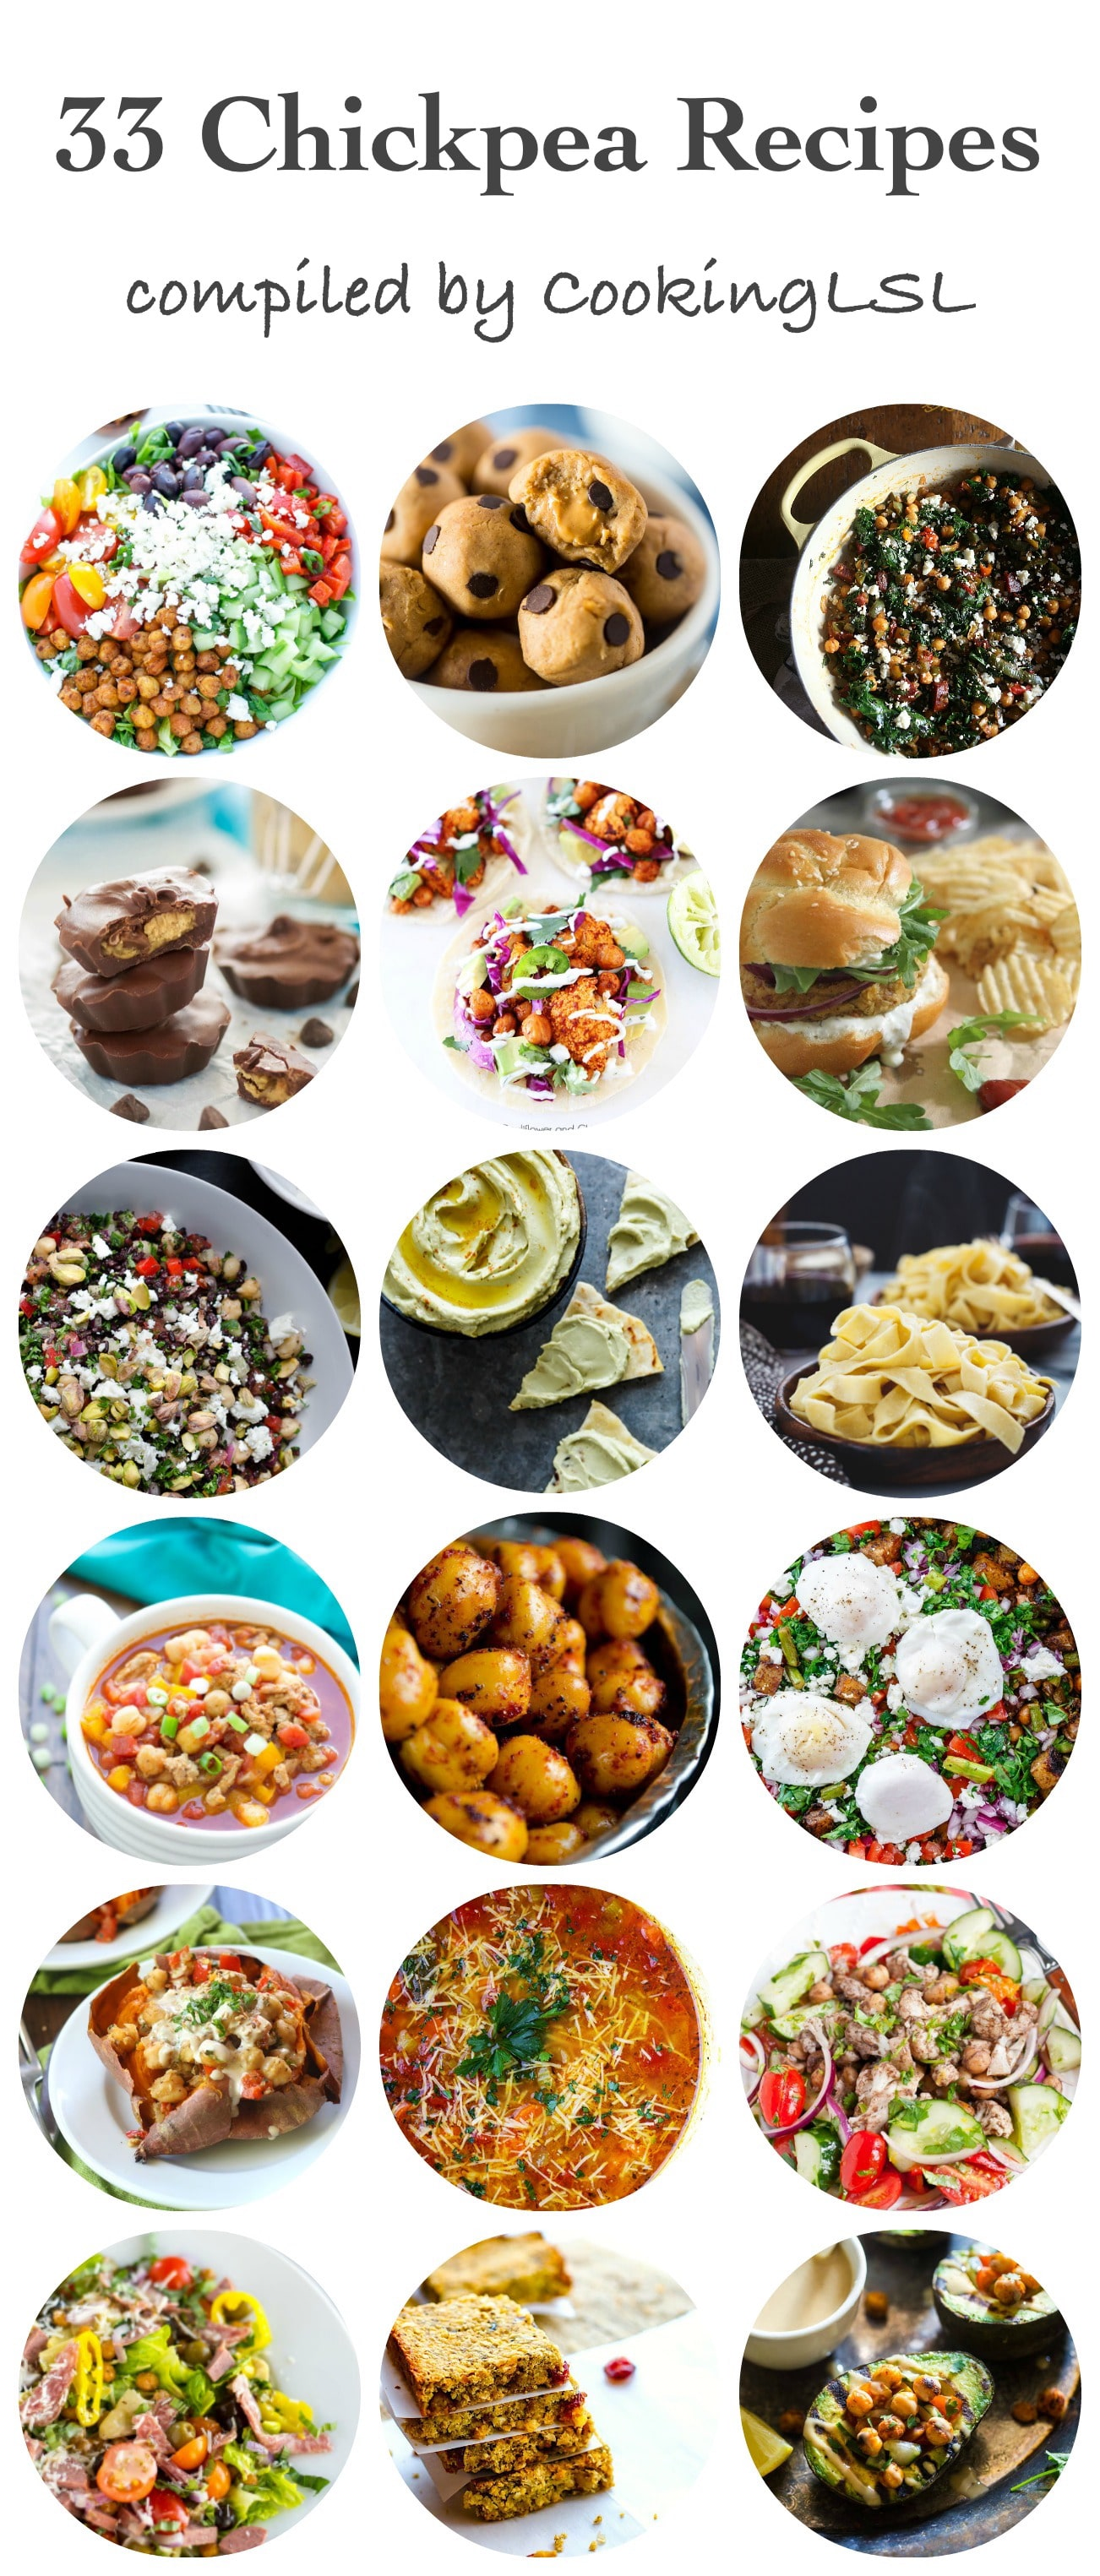 33-chickpea-recipes